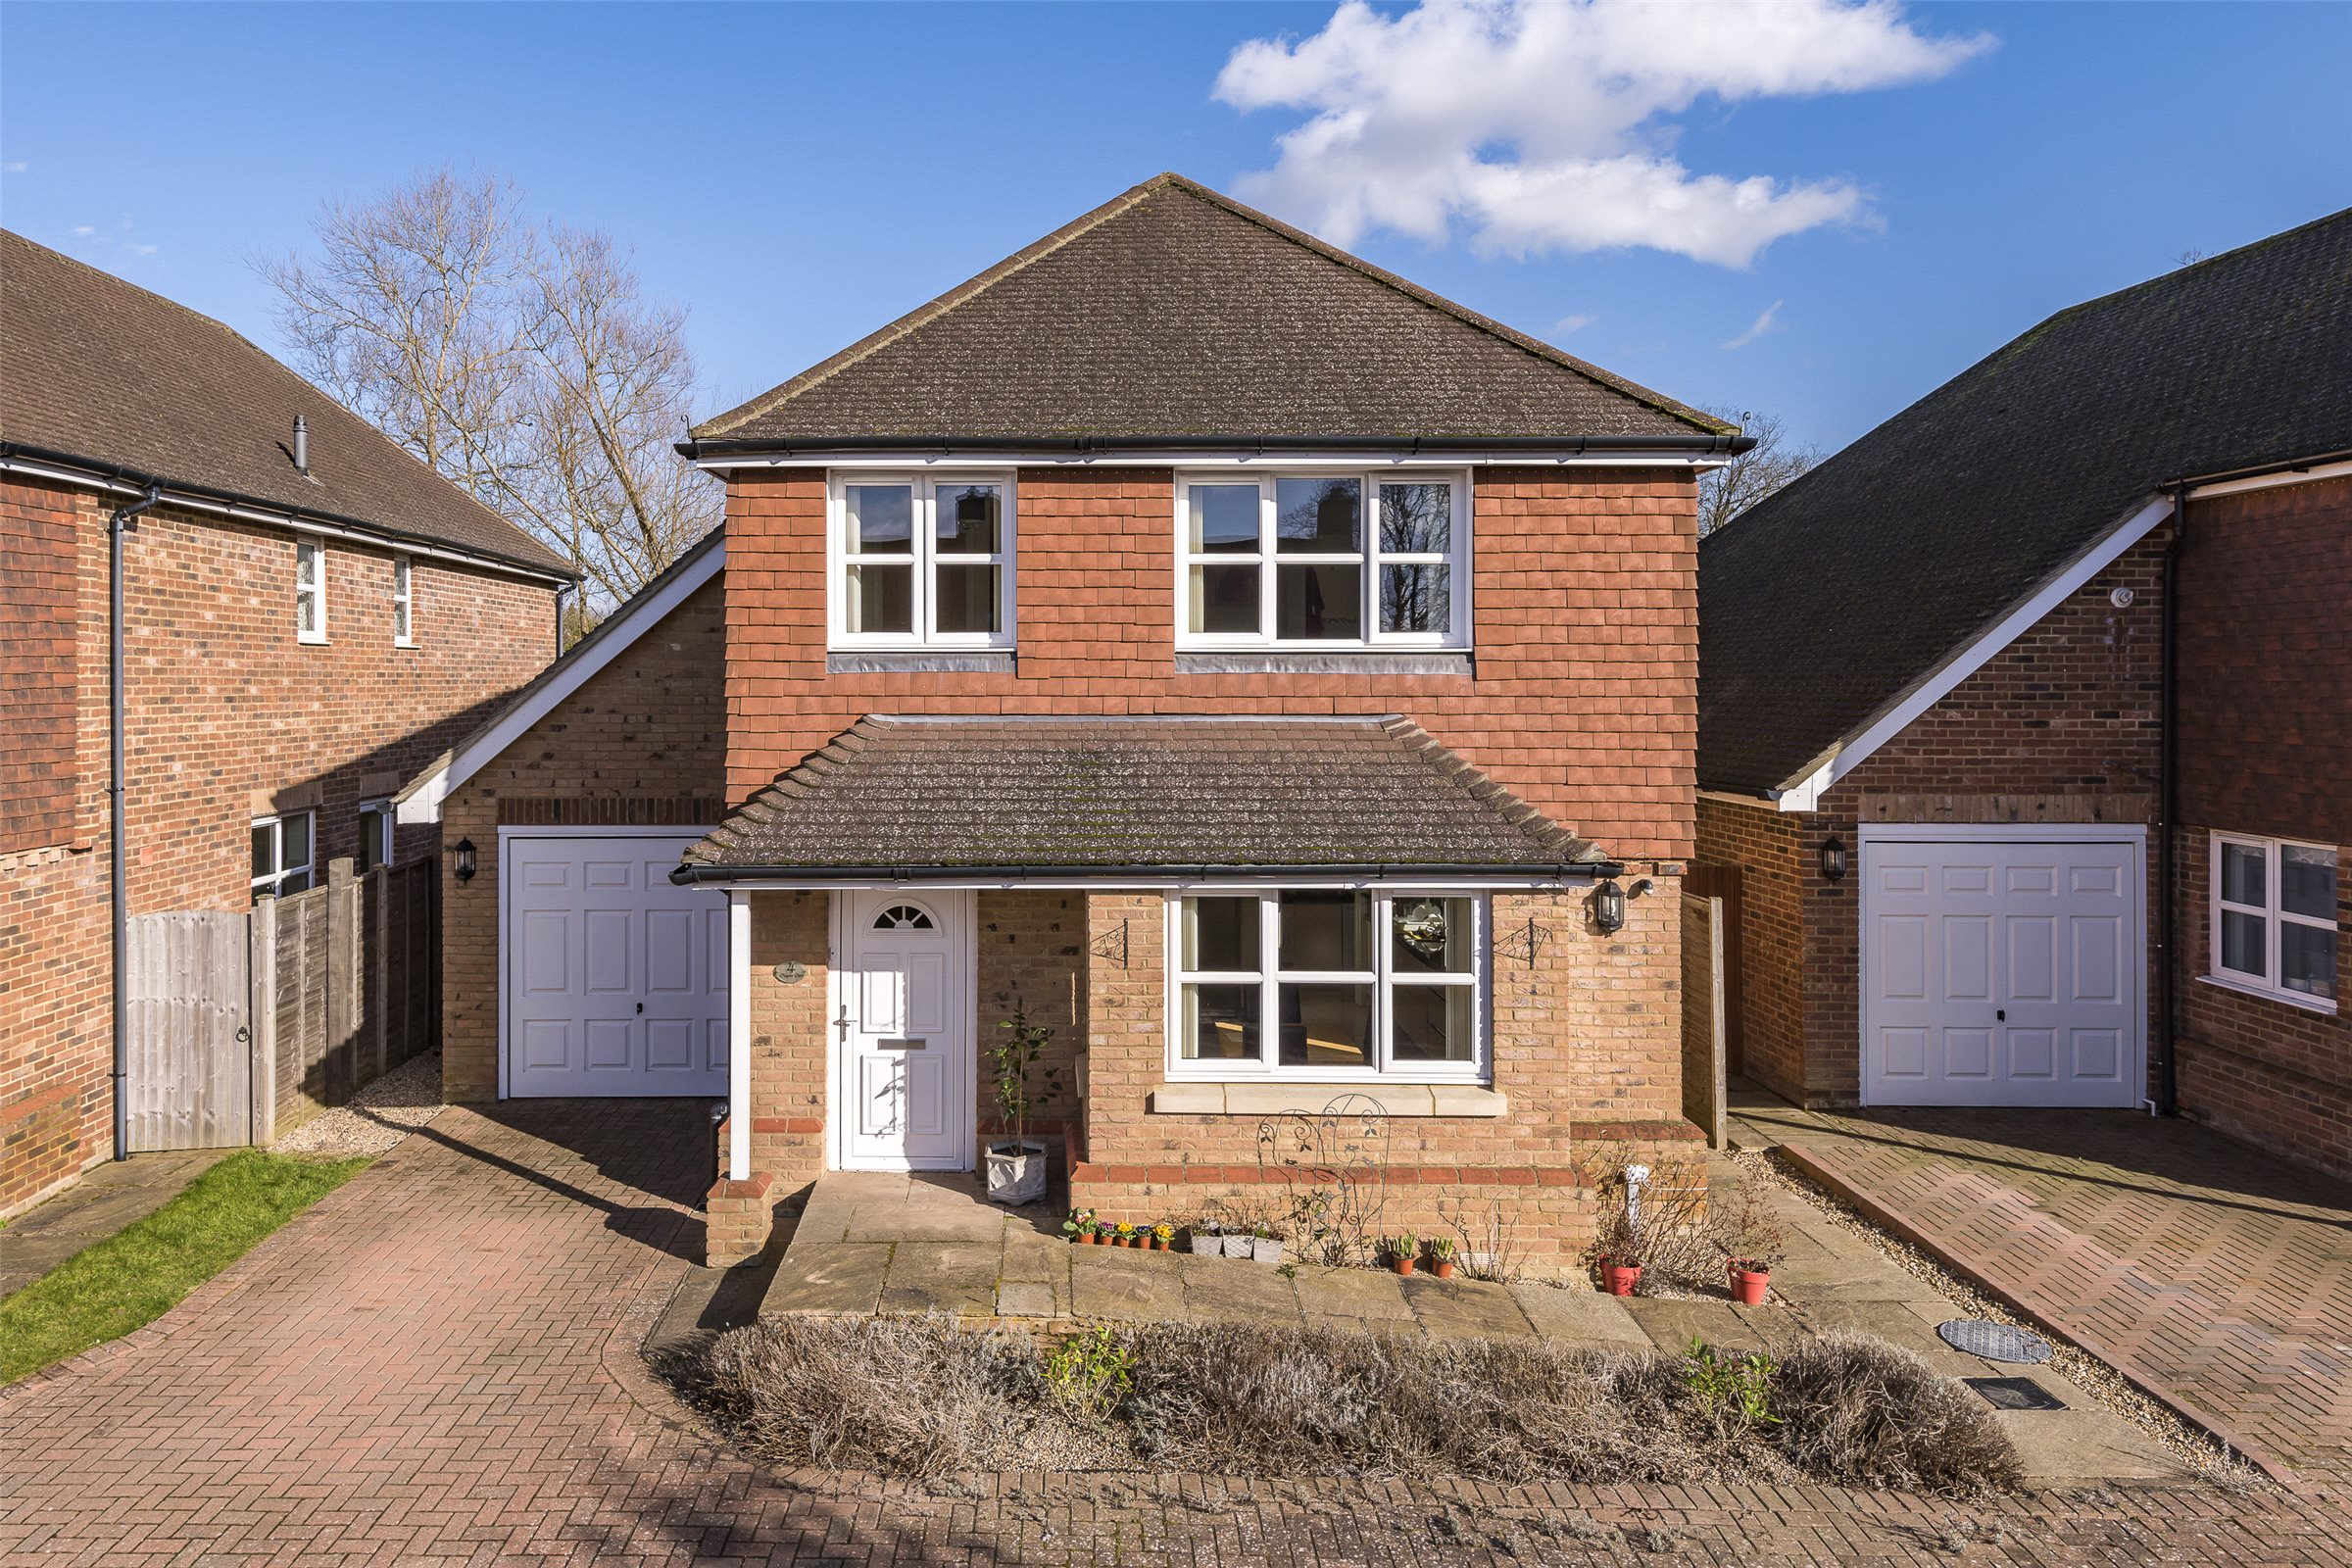 4 Bedrooms Detached House for sale in Napier Close, Salfords, Surrey, RH1